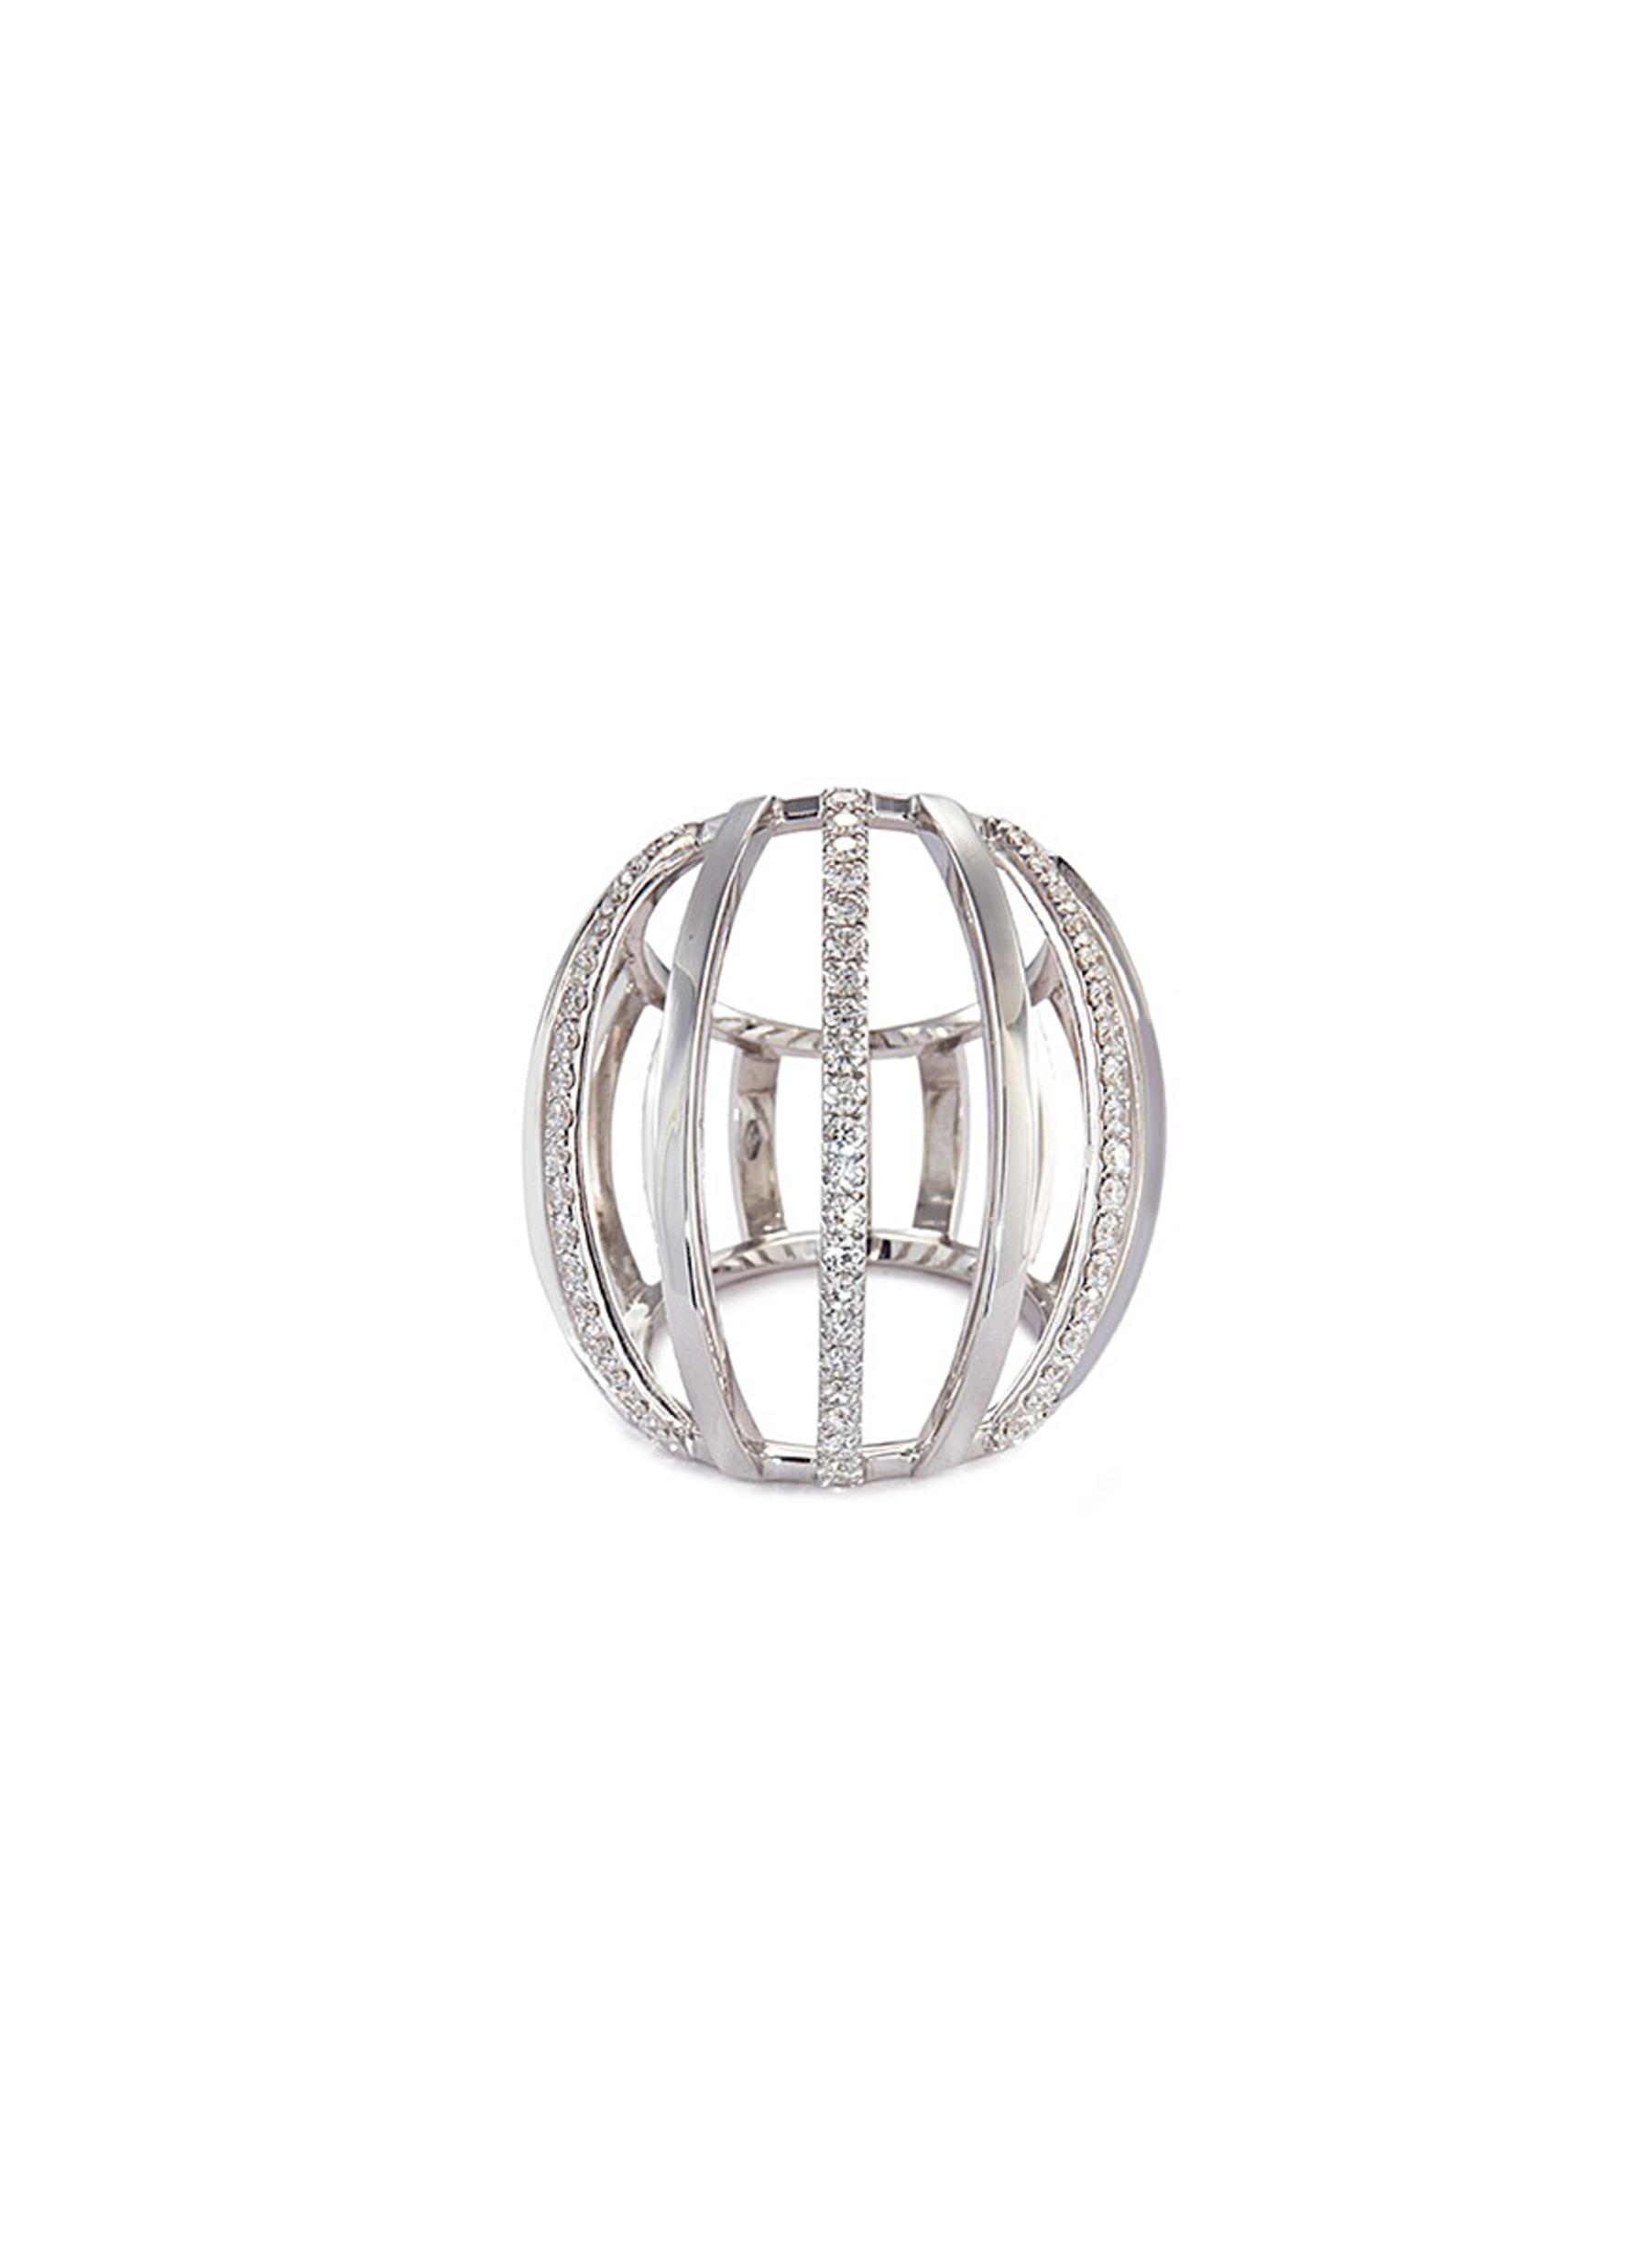 DIAMOND 18K WHITE GOLD CAGE RING